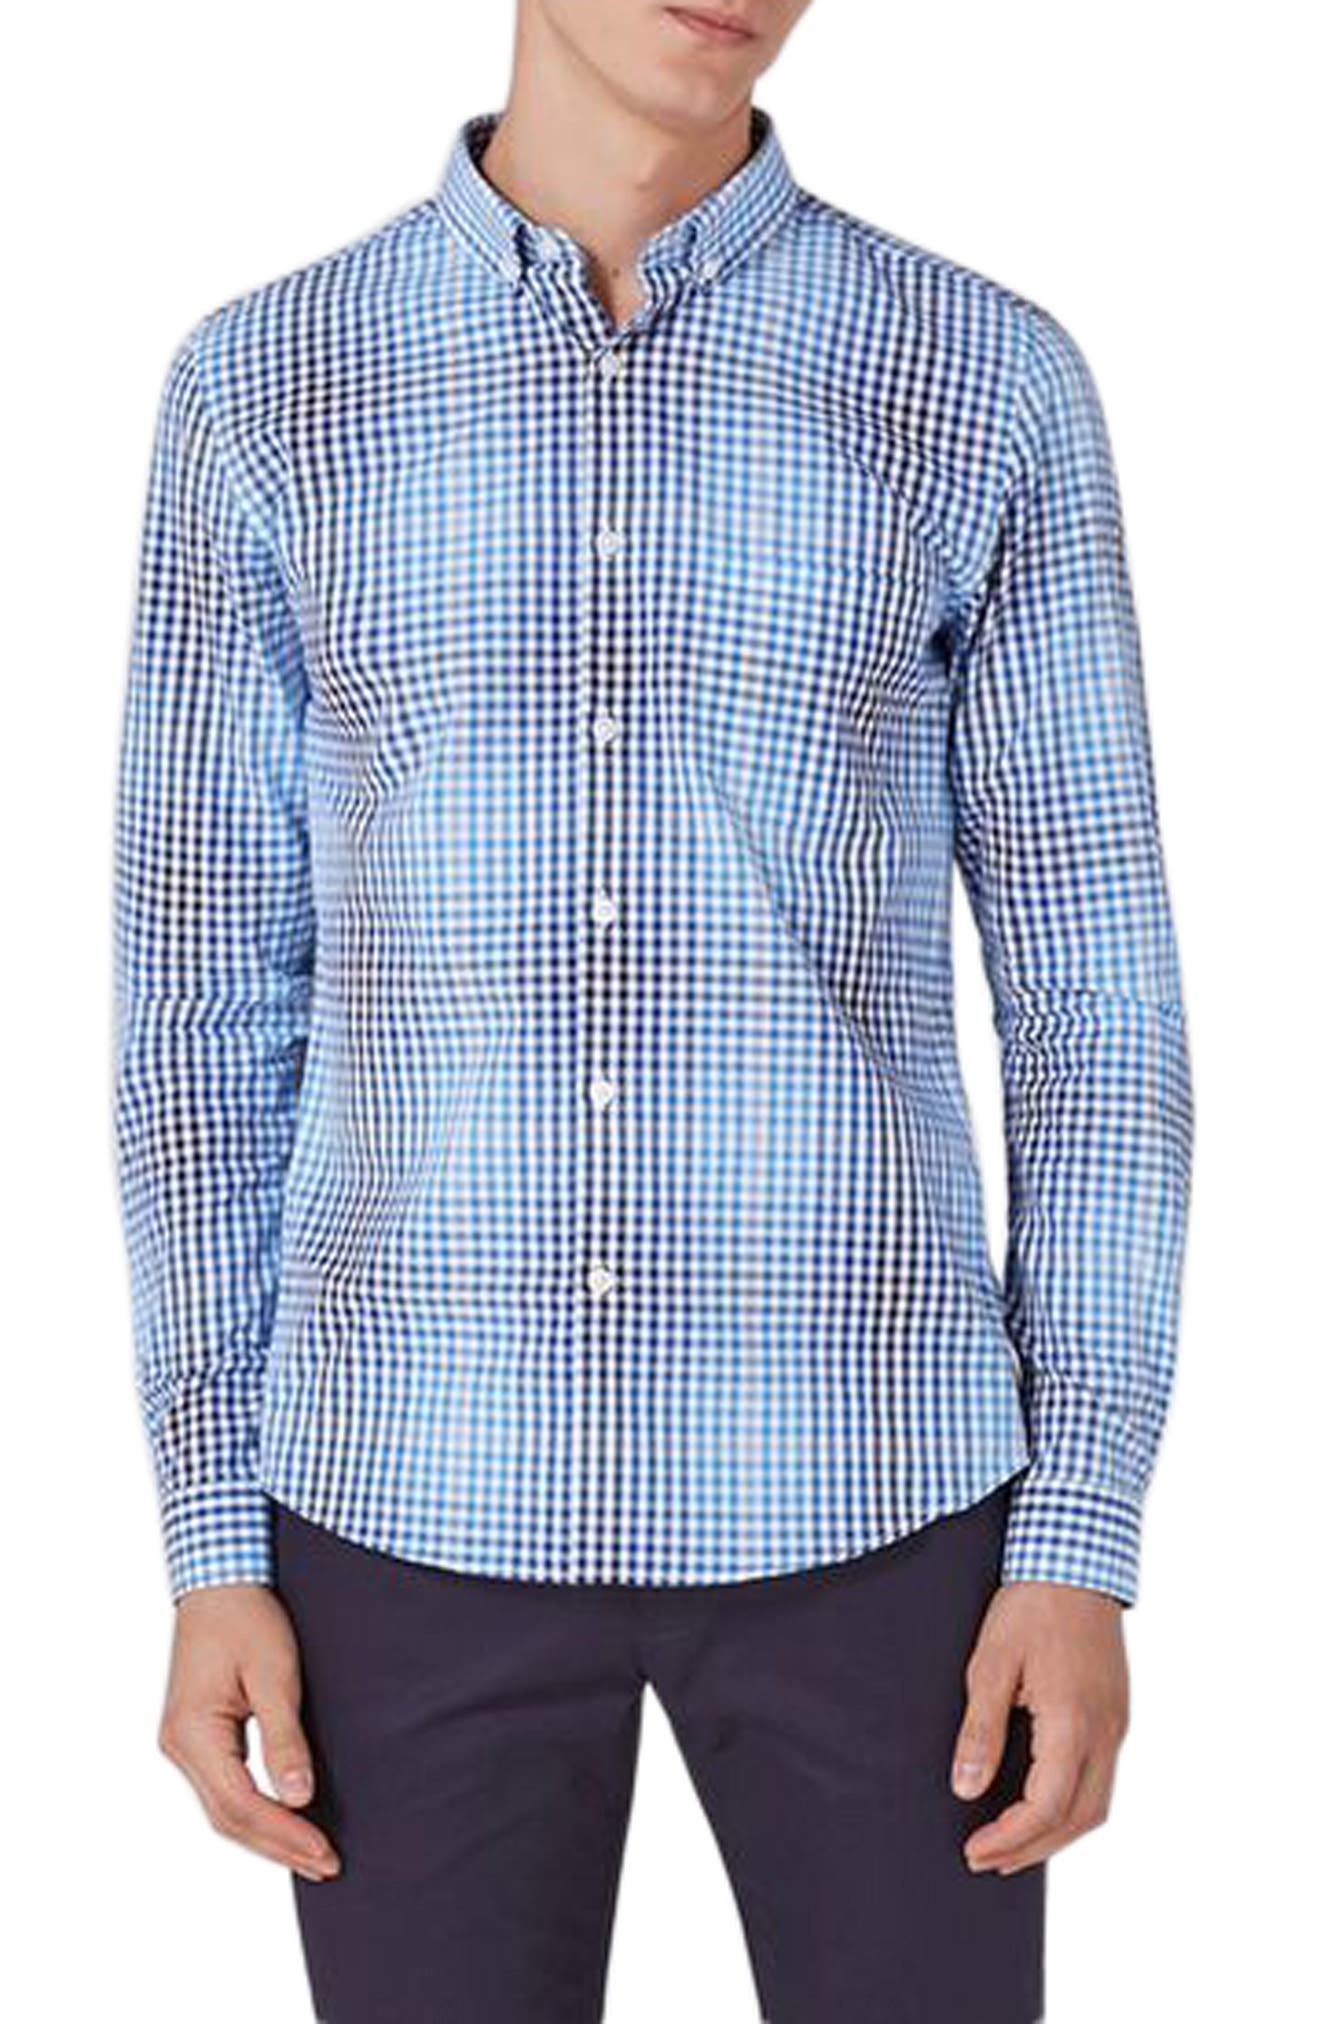 Alternate Image 1 Selected - Topman Ombré Gingham Woven Shirt